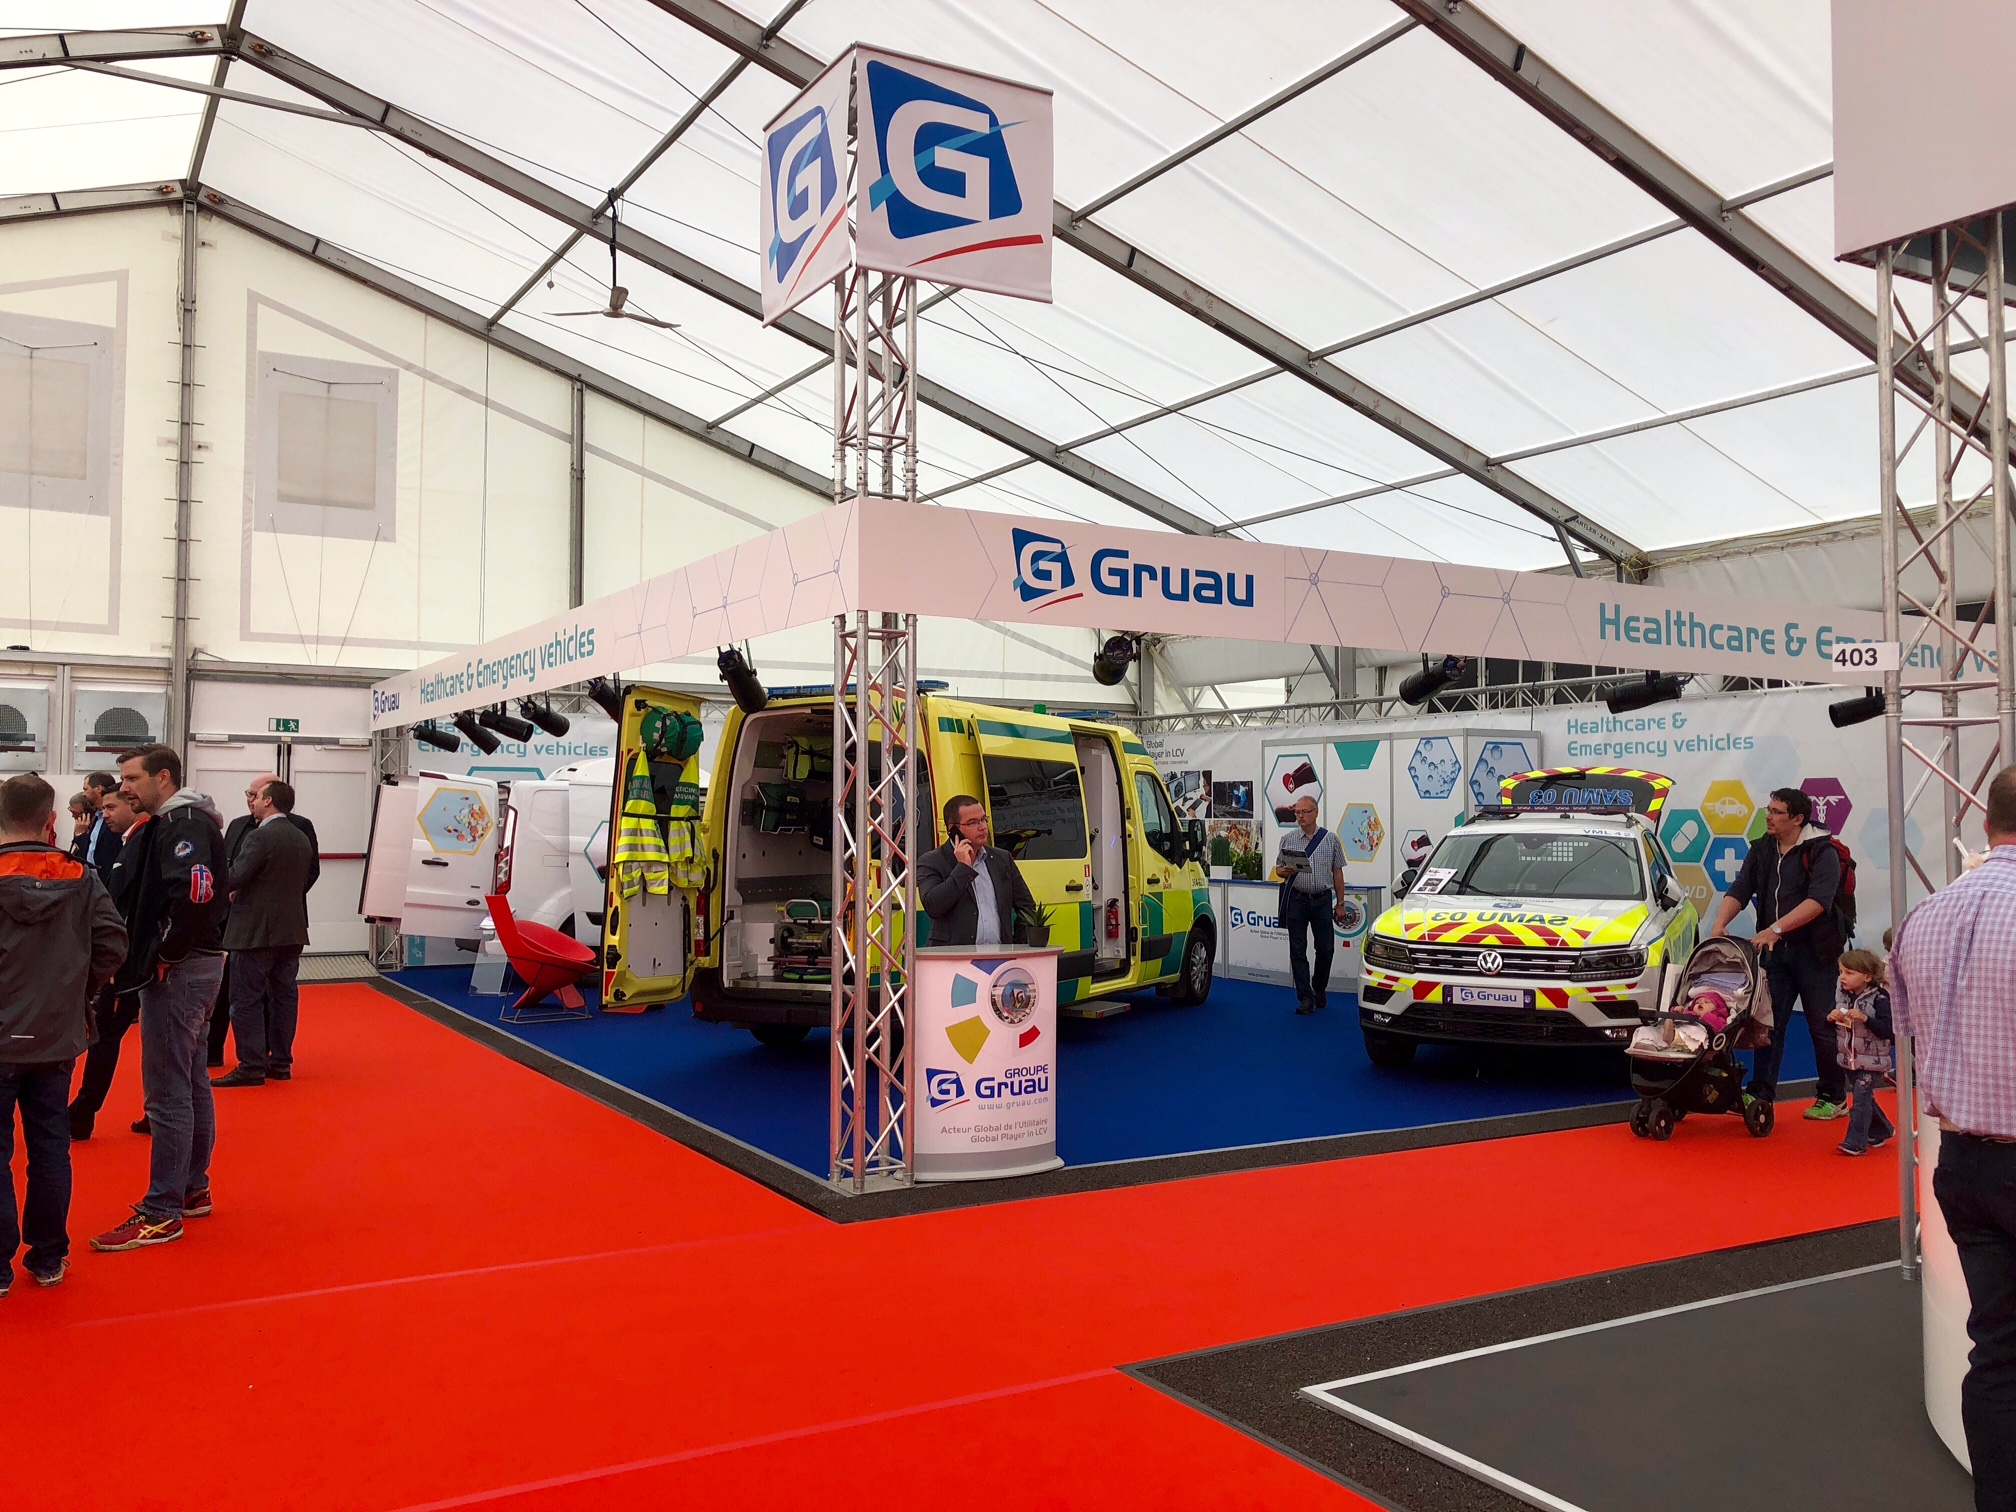 Le sp cialiste des ambulances made in france petit picot for Salon made in france 2018